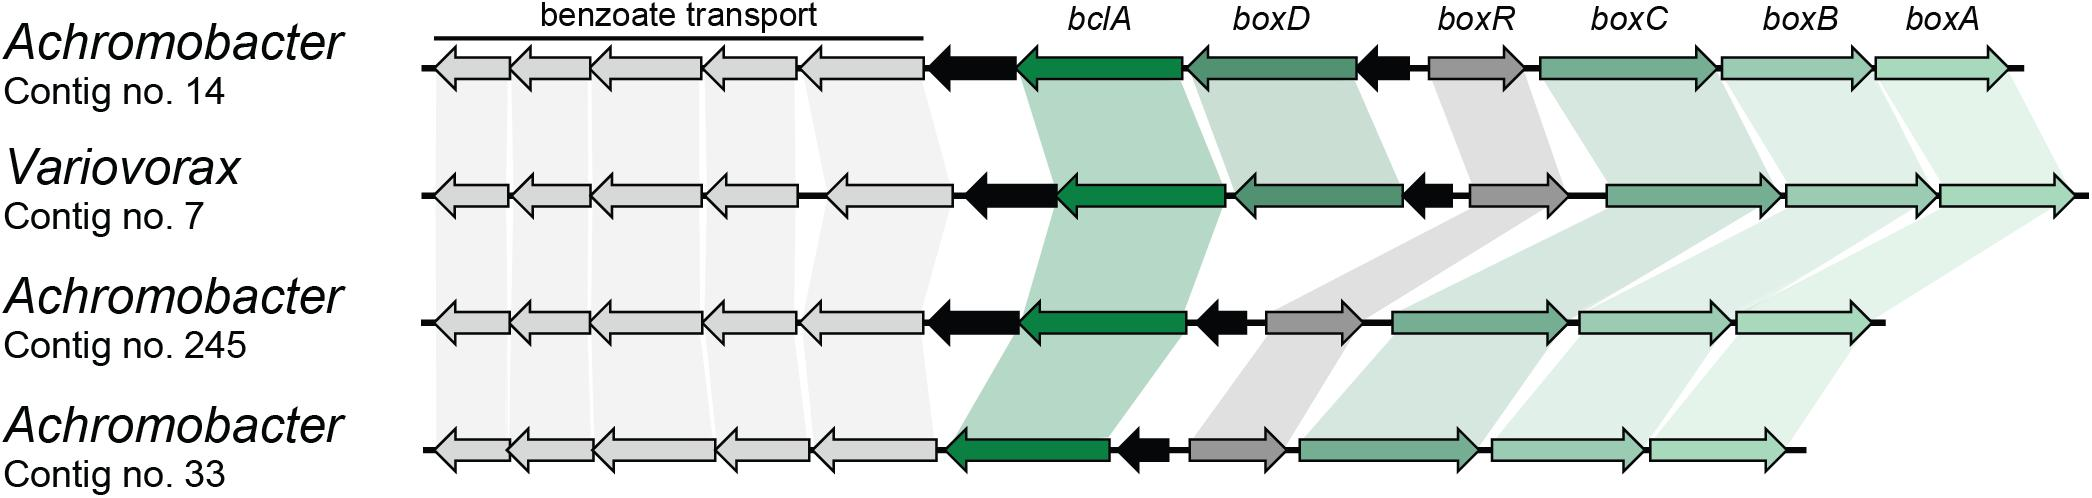 Frontiers | Metagenomic Analysis of a Biphenyl-Degrading